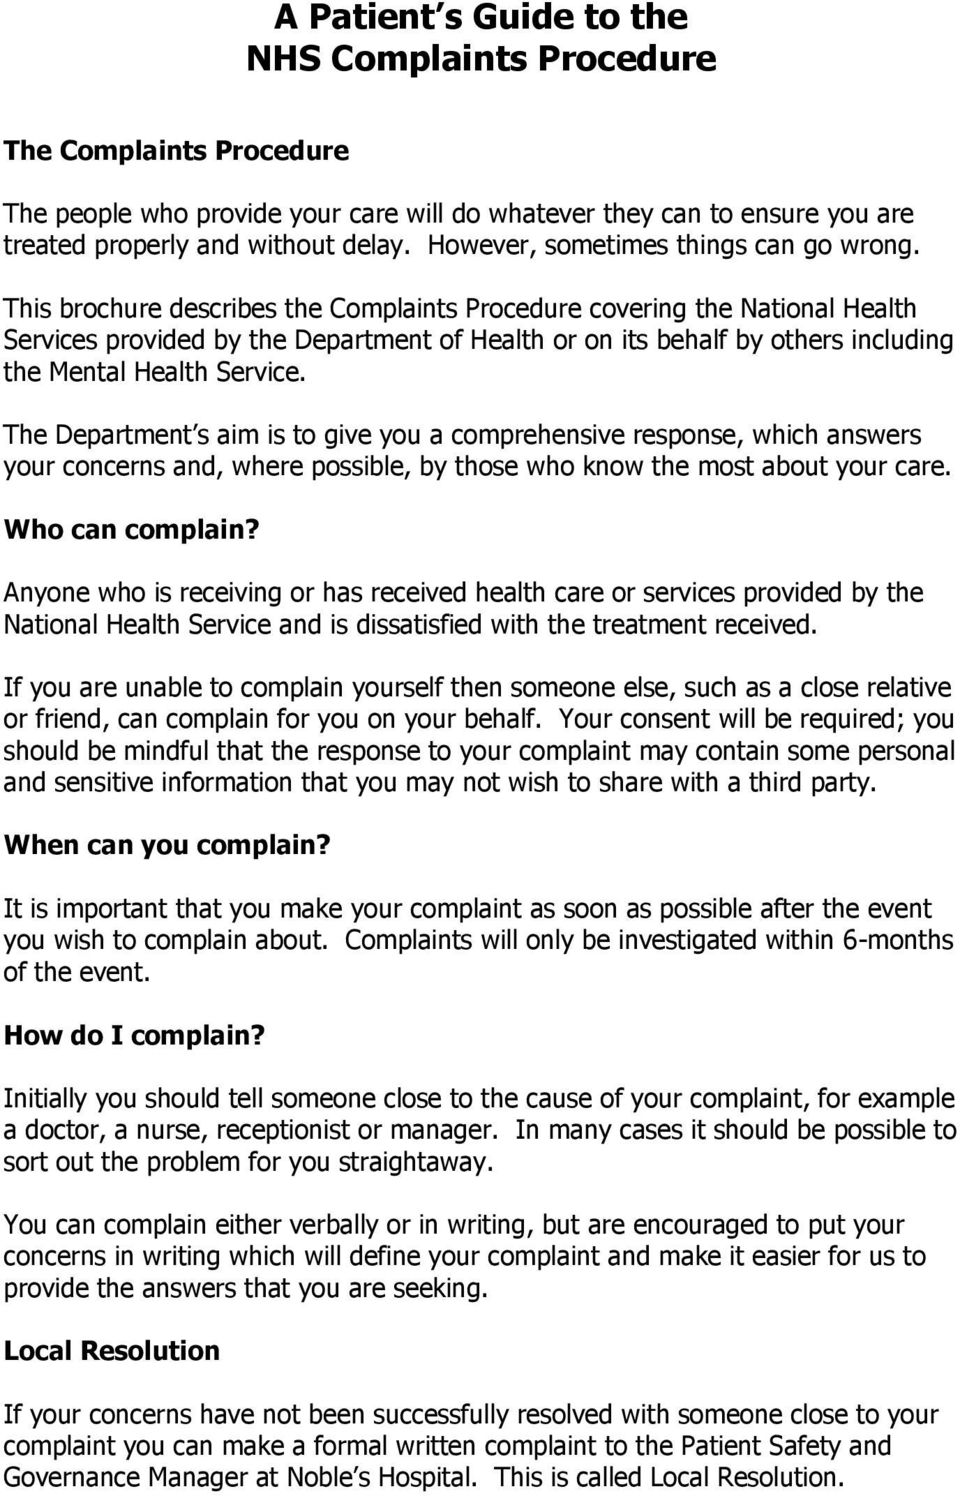 This brochure describes the Complaints Procedure covering the National Health Services provided by the Department of Health or on its behalf by others including the Mental Health Service.